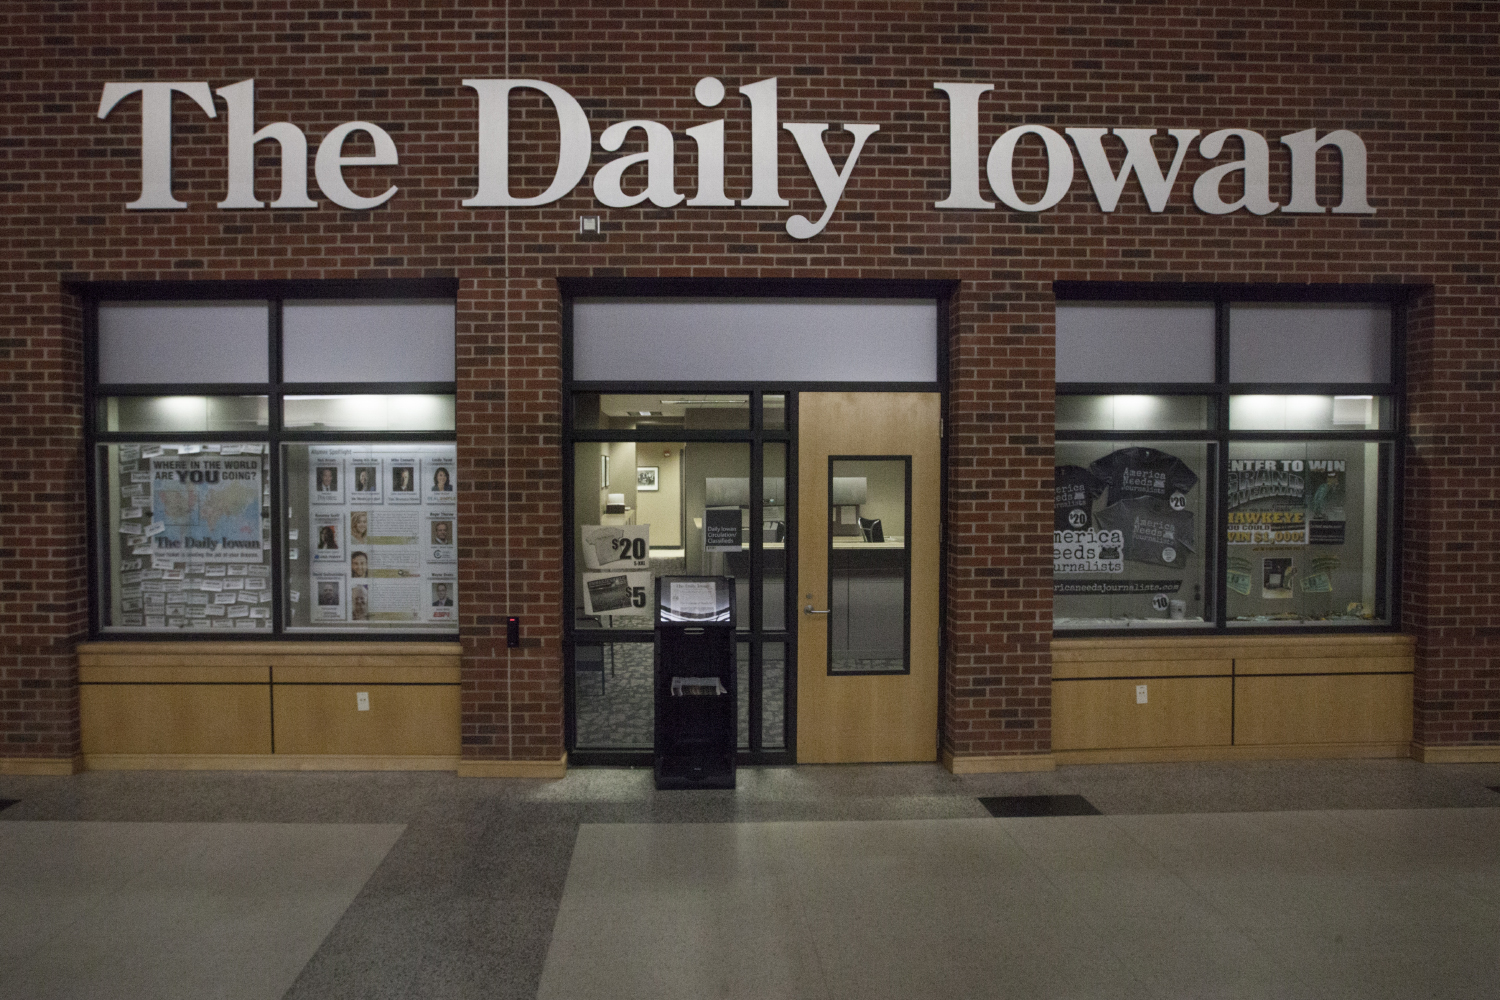 The Daily Iowan is seen on February 26, 2019